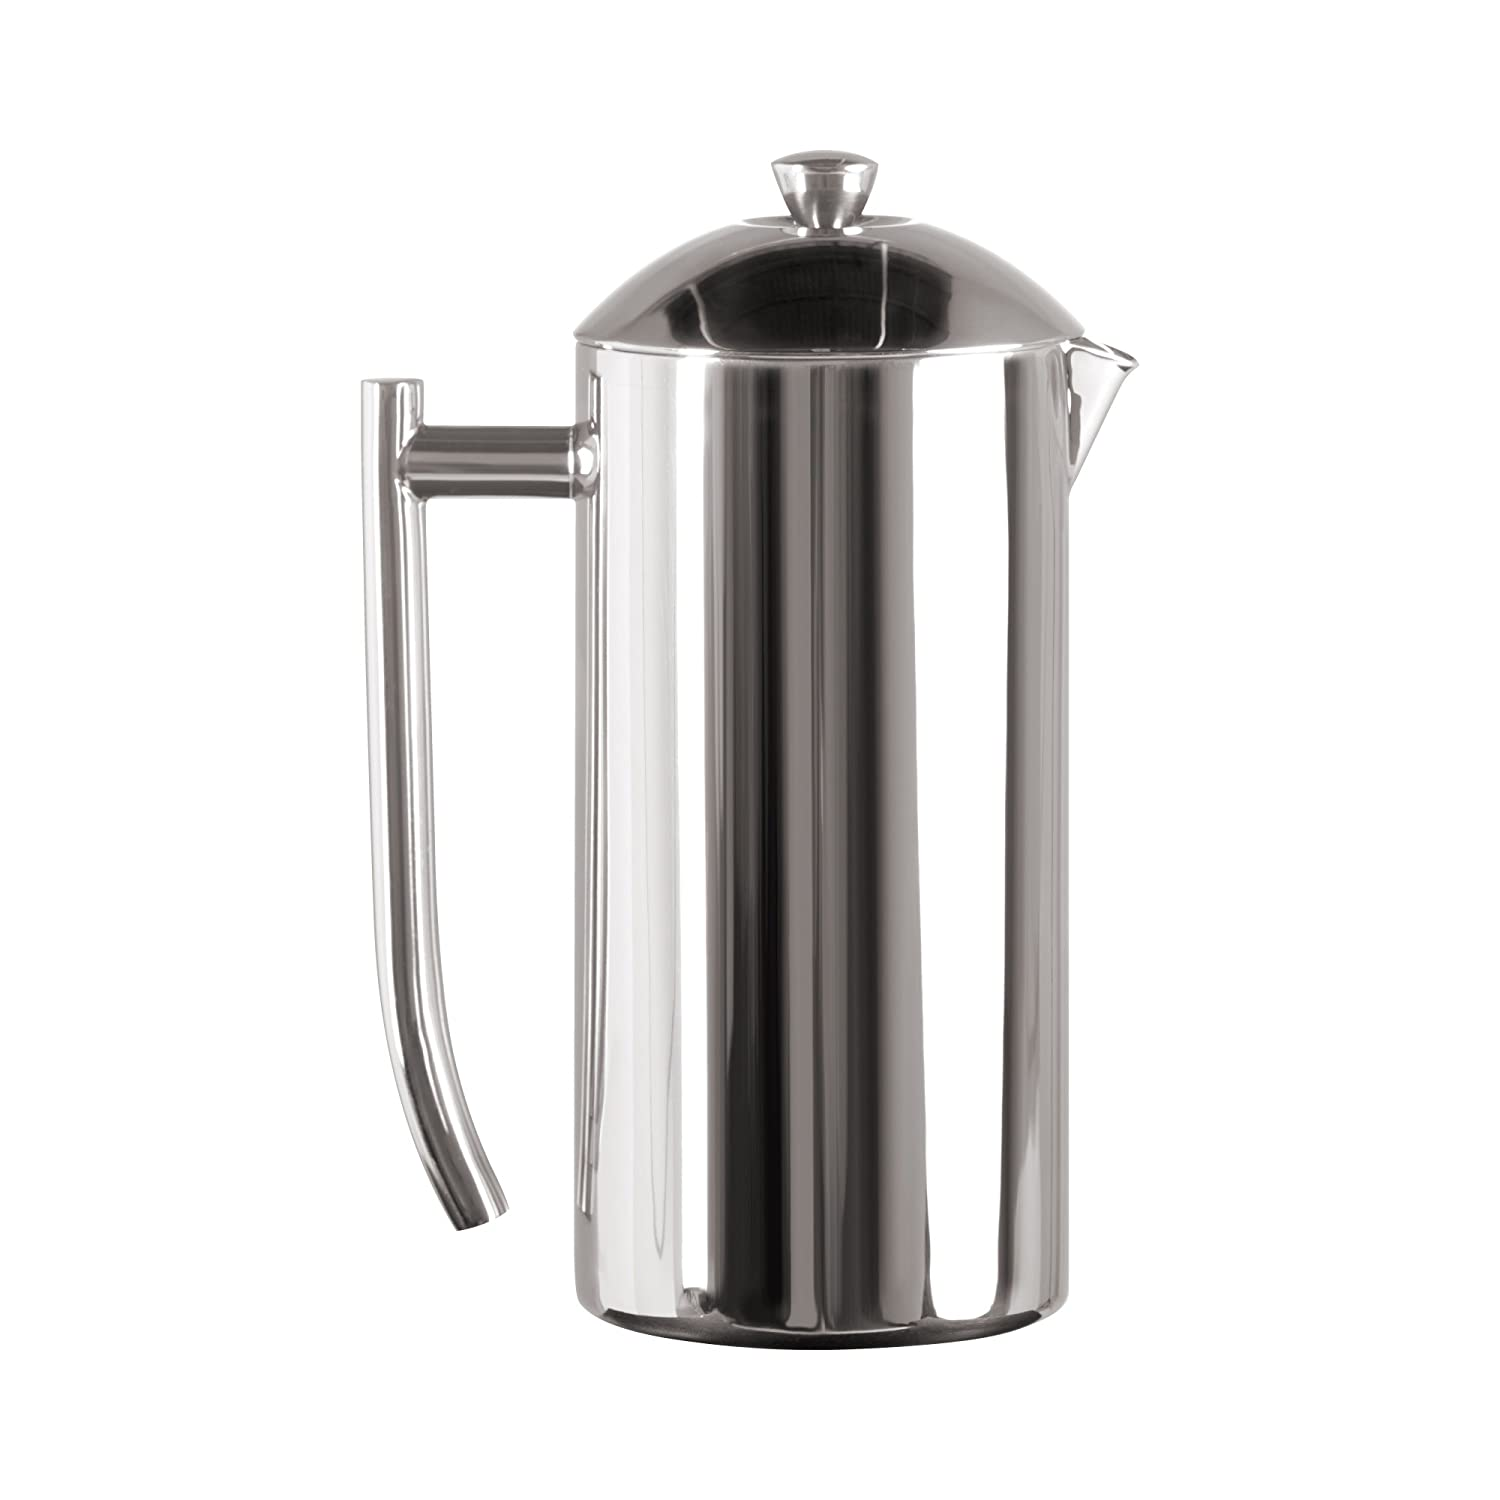 Best French Press Coffee Maker Cooks Illustrated : Best Coffee Press: How To Choose The Best On The Market?